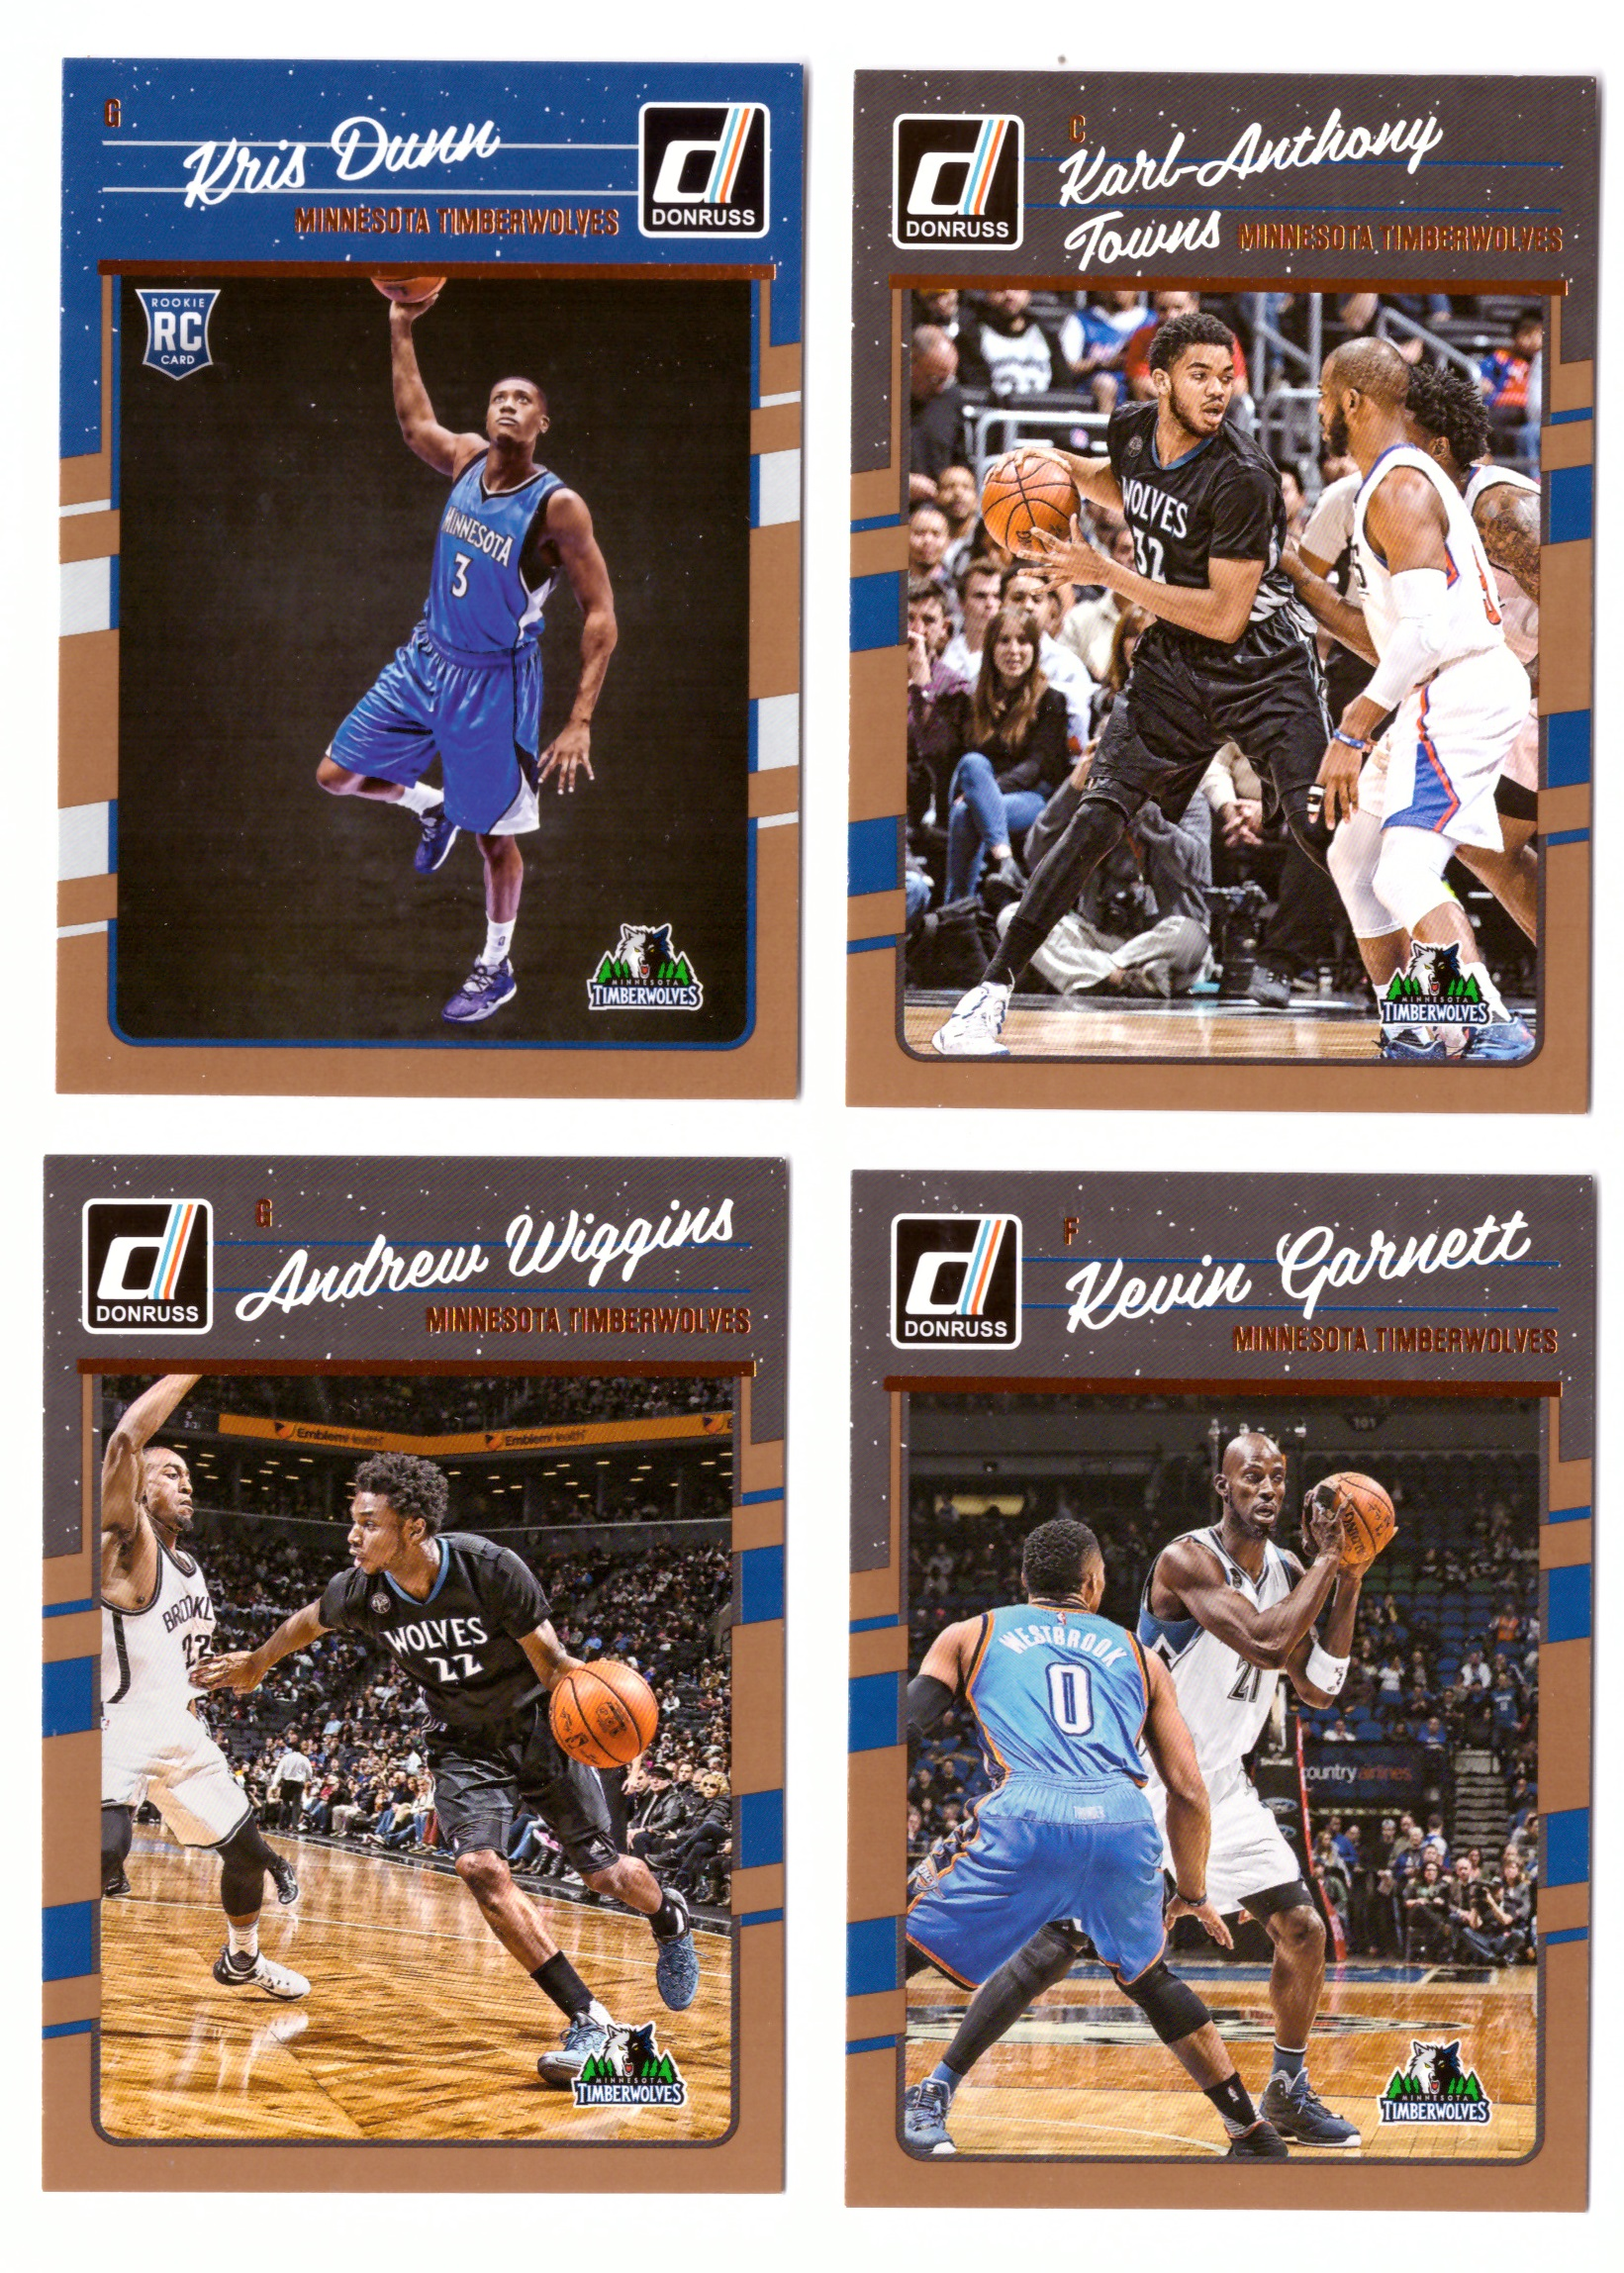 2016-17 Donruss Basketball Team Set - Minnesota Timberwolves